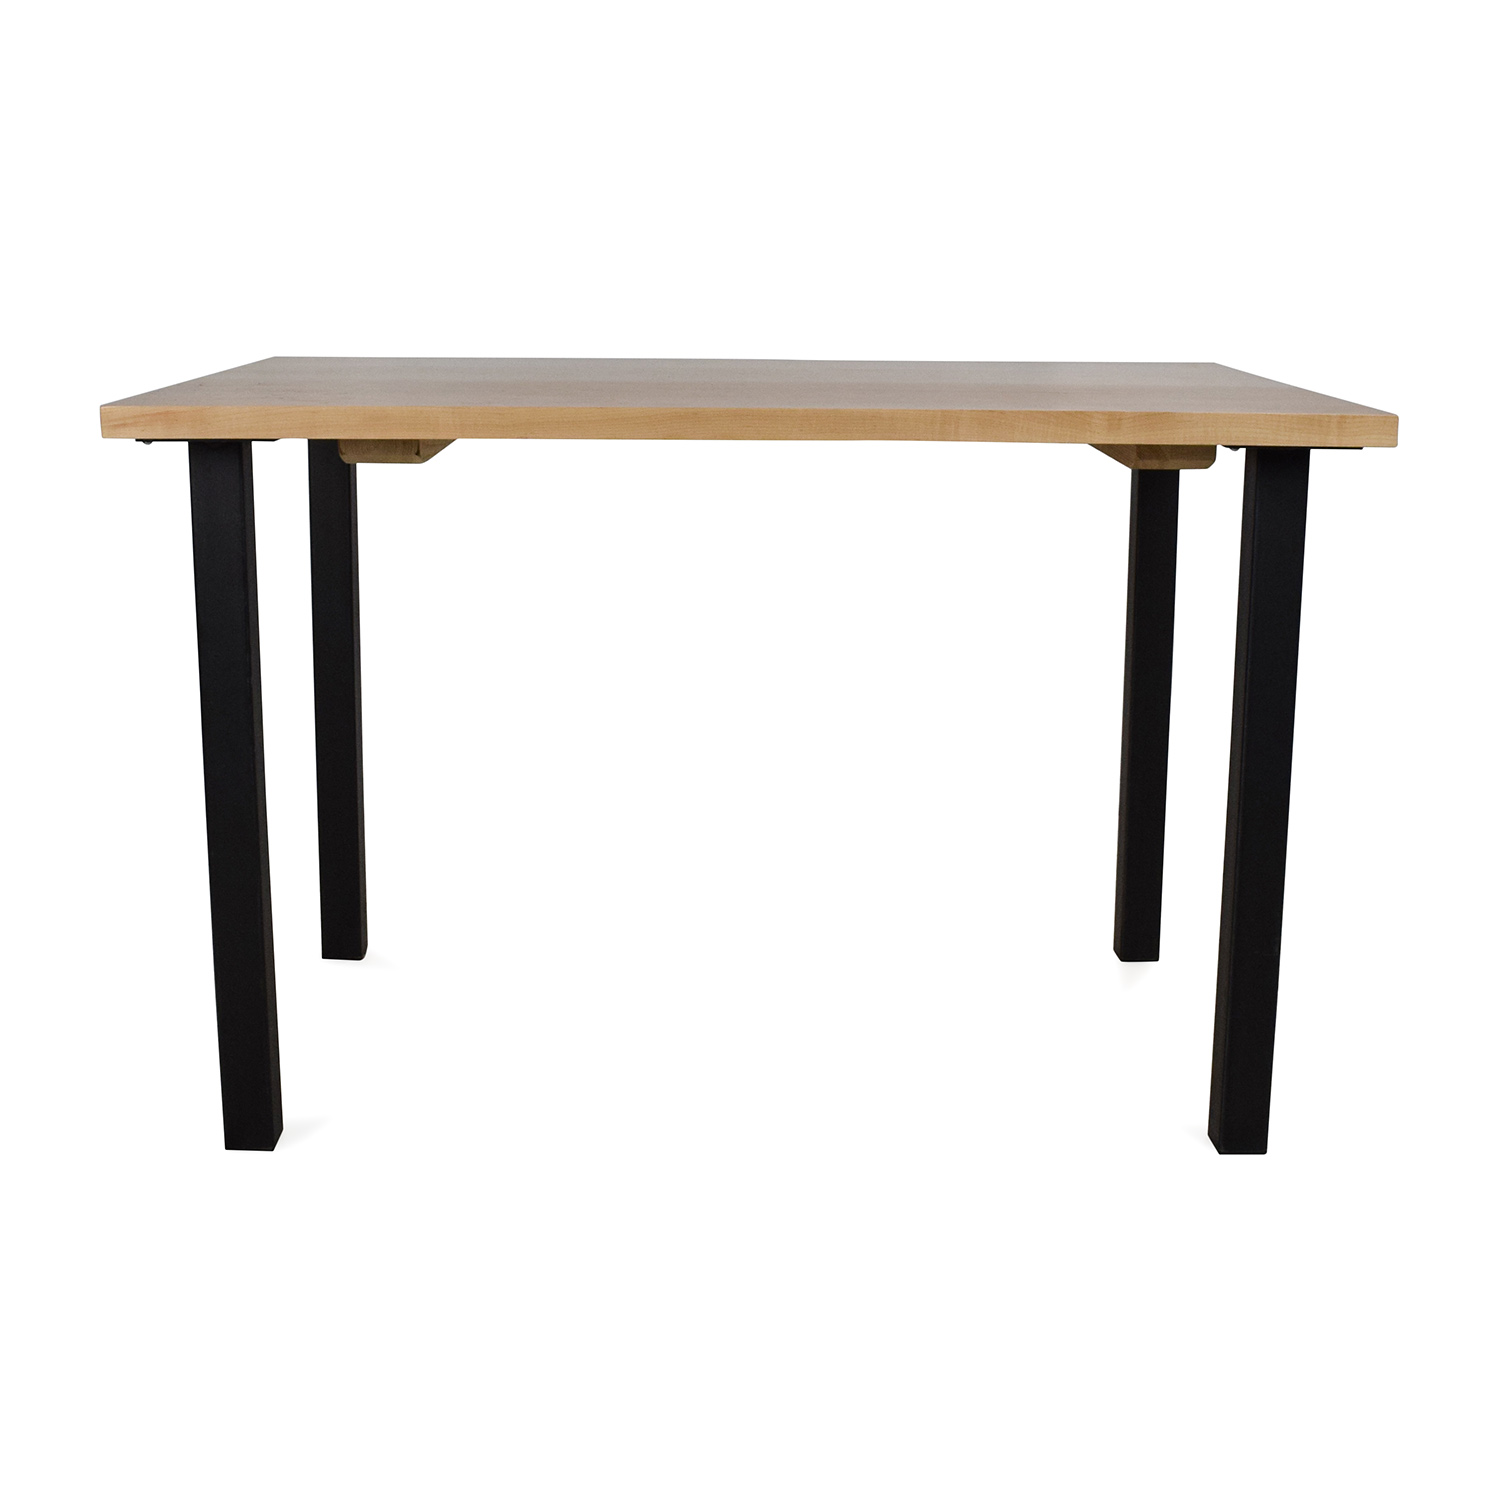 shop Room and Board Room & Board Parsons Leg Desk online